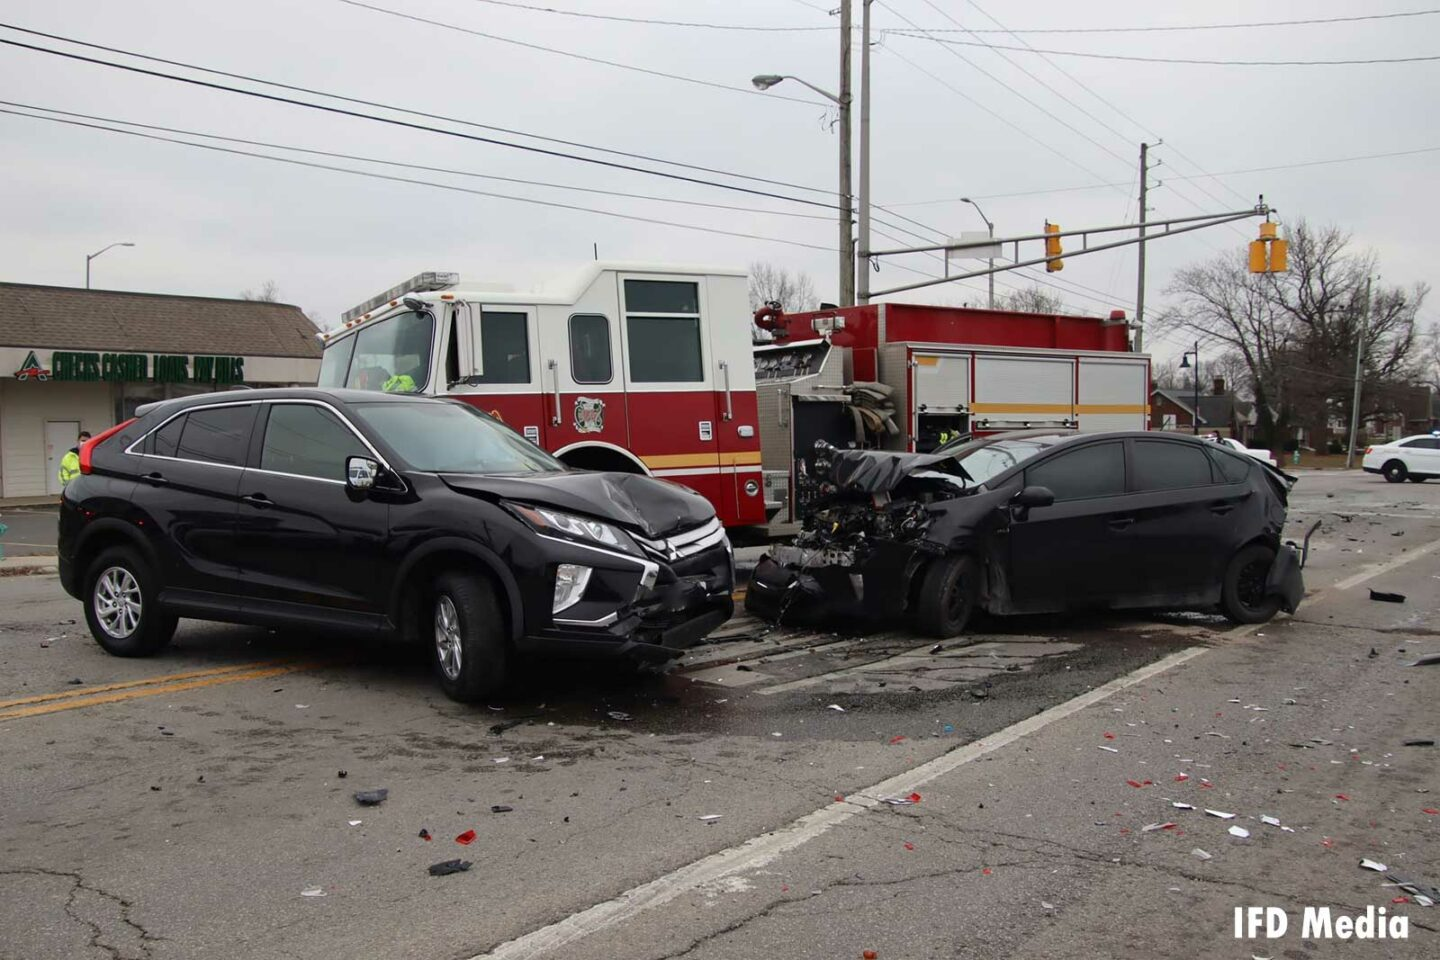 Two smashed vehicles after an accident involving an Indy fire truck